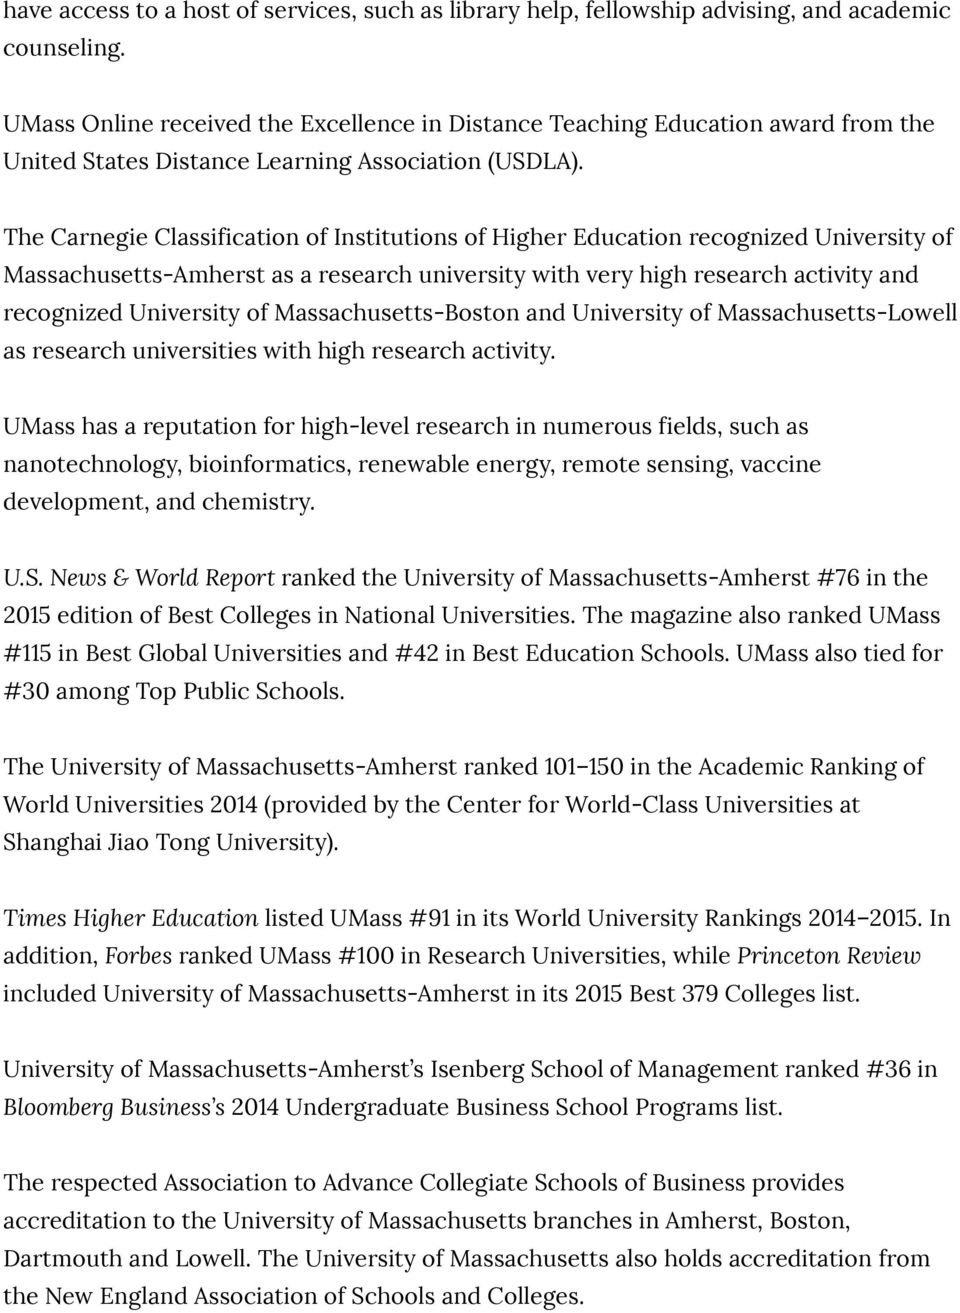 The Carnegie Classification of Institutions of Higher Education recognized University of Massachusetts-Amherst as a research university with very high research activity and recognized University of